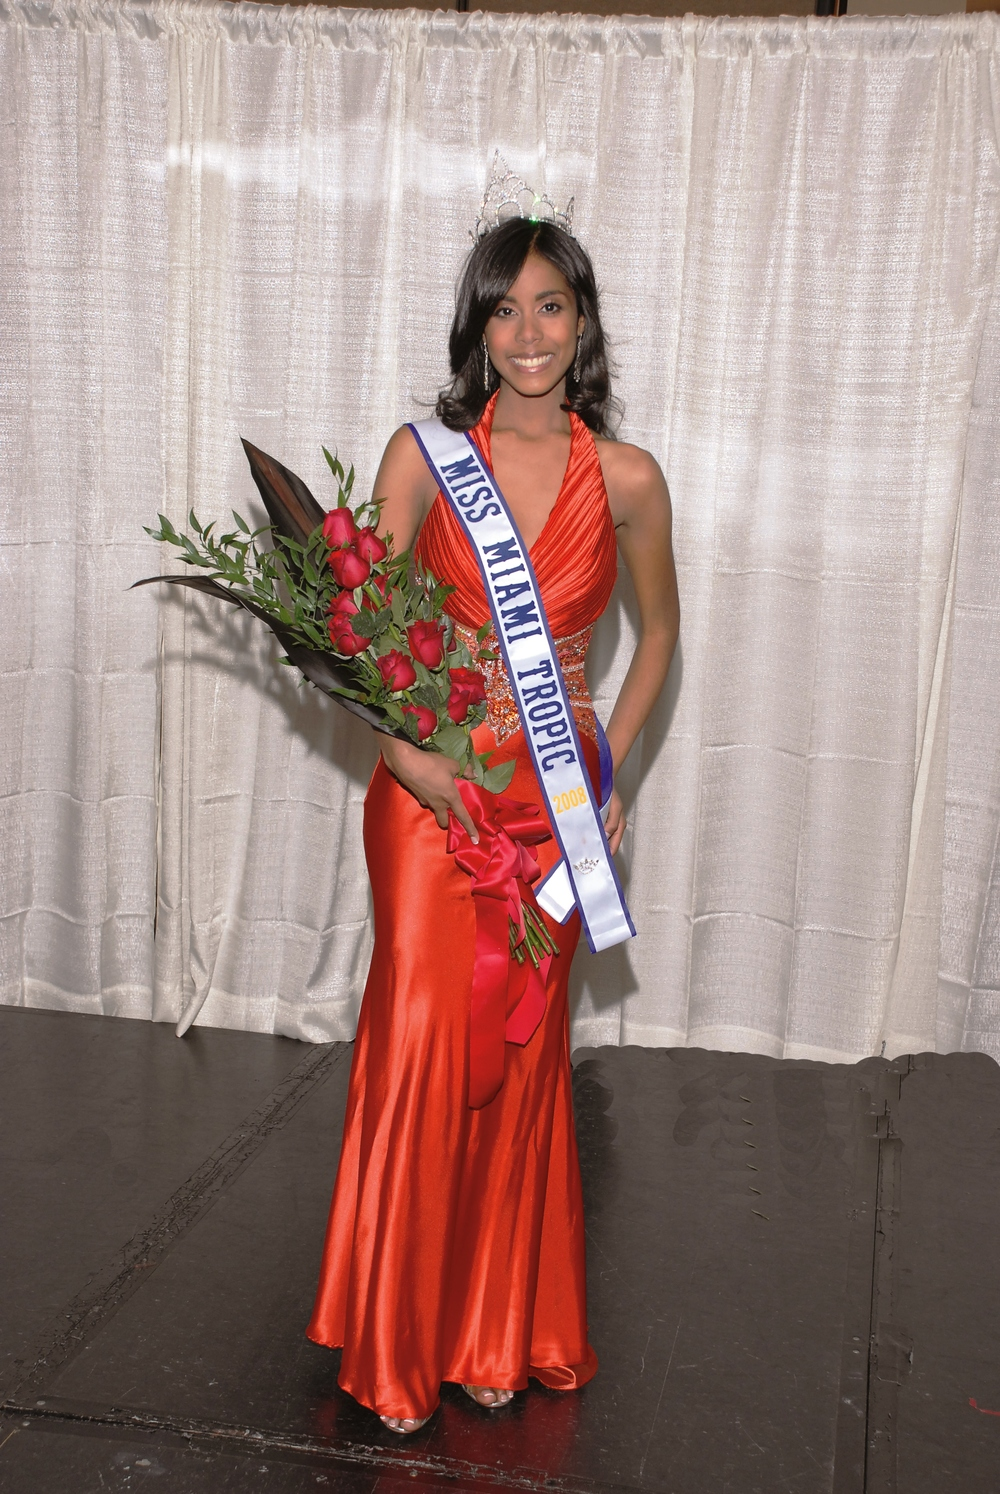 Erica Rivera Miss Miami Tropic 2008